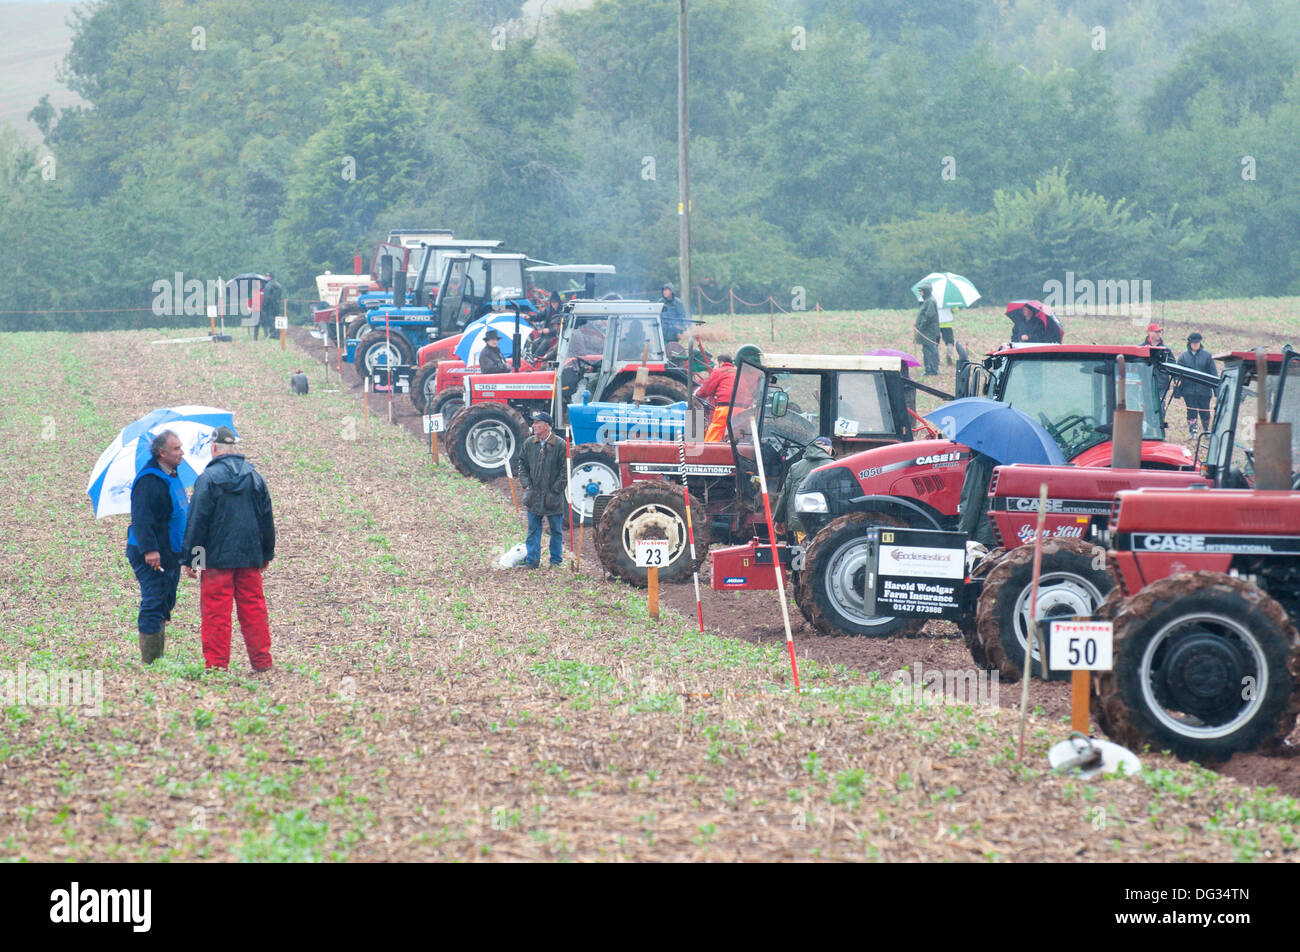 Llanwarne, Herefordshire, UK. 13th October 2013. Despite the rain stoicism and competitive spritit is evident on the second day of the 2013 British National Ploughing Championships which have returned to Herefordshire for the first time in 27 years. The top ploughmen of  each class (reversible and conventional) will represent Britain at the World Ploughing Championships to be held in France in 2014. Photo credit: Graham M. Lawrence/Alamy Live News. - Stock Image